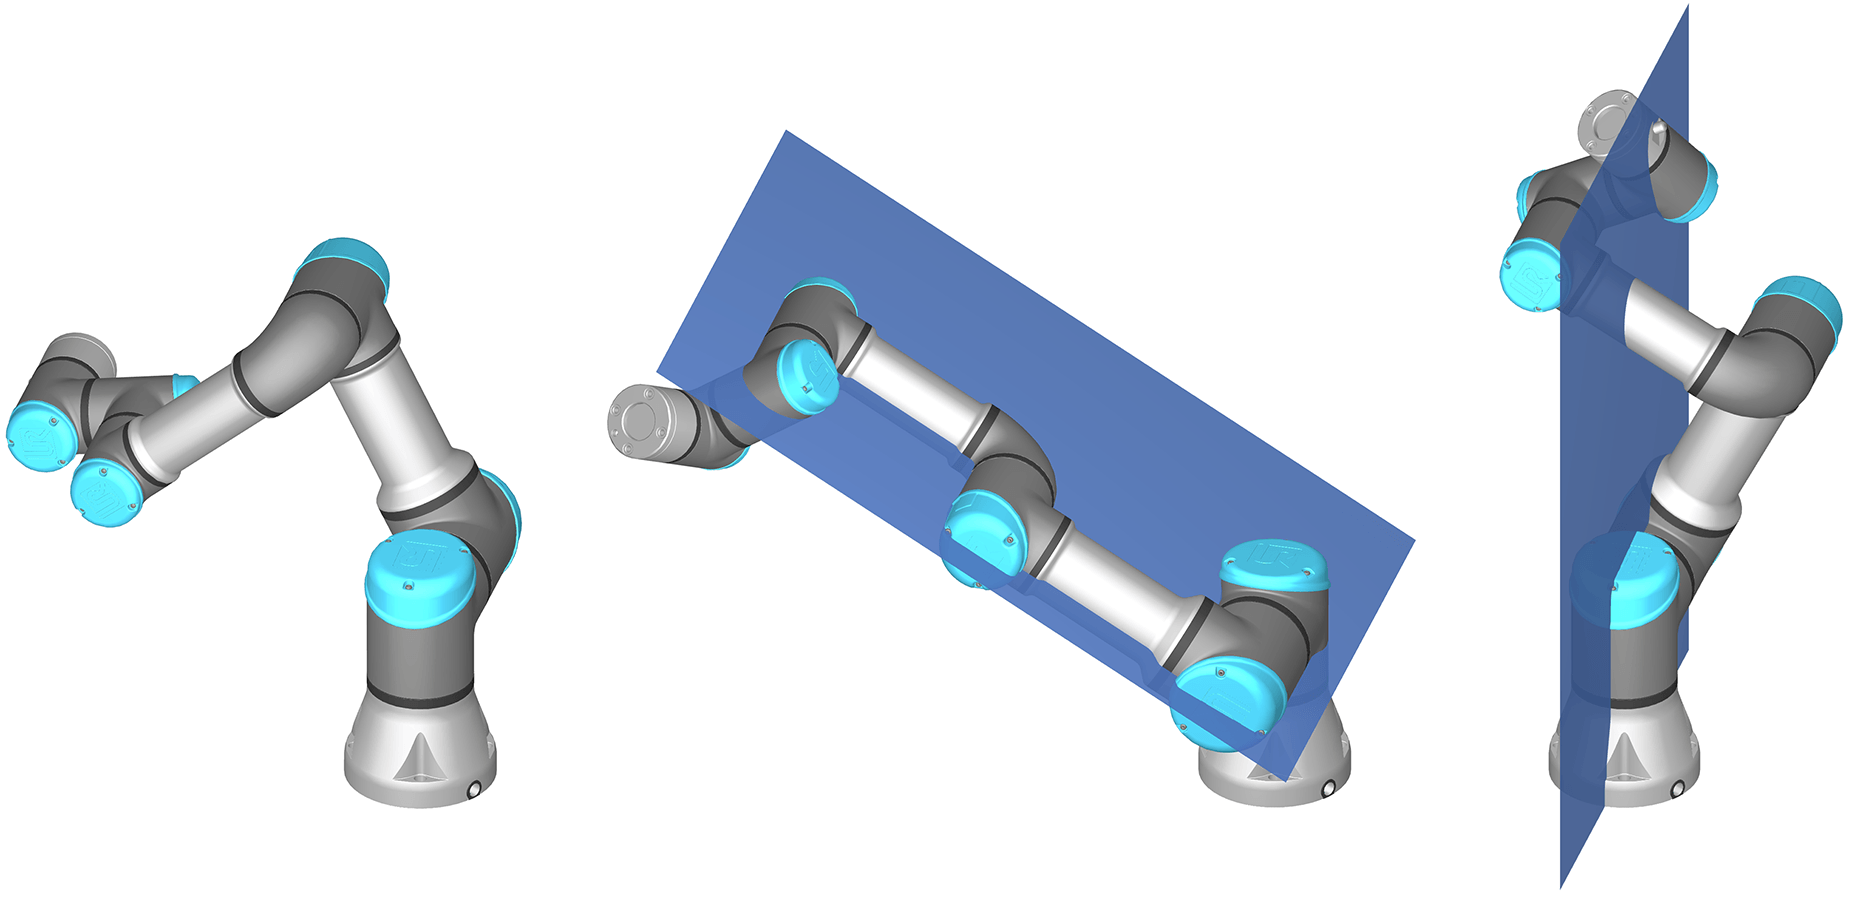 Types of singularity in the typical collaborative robot arm: wrist (left), elbow (center) and shoulder (right) singularities